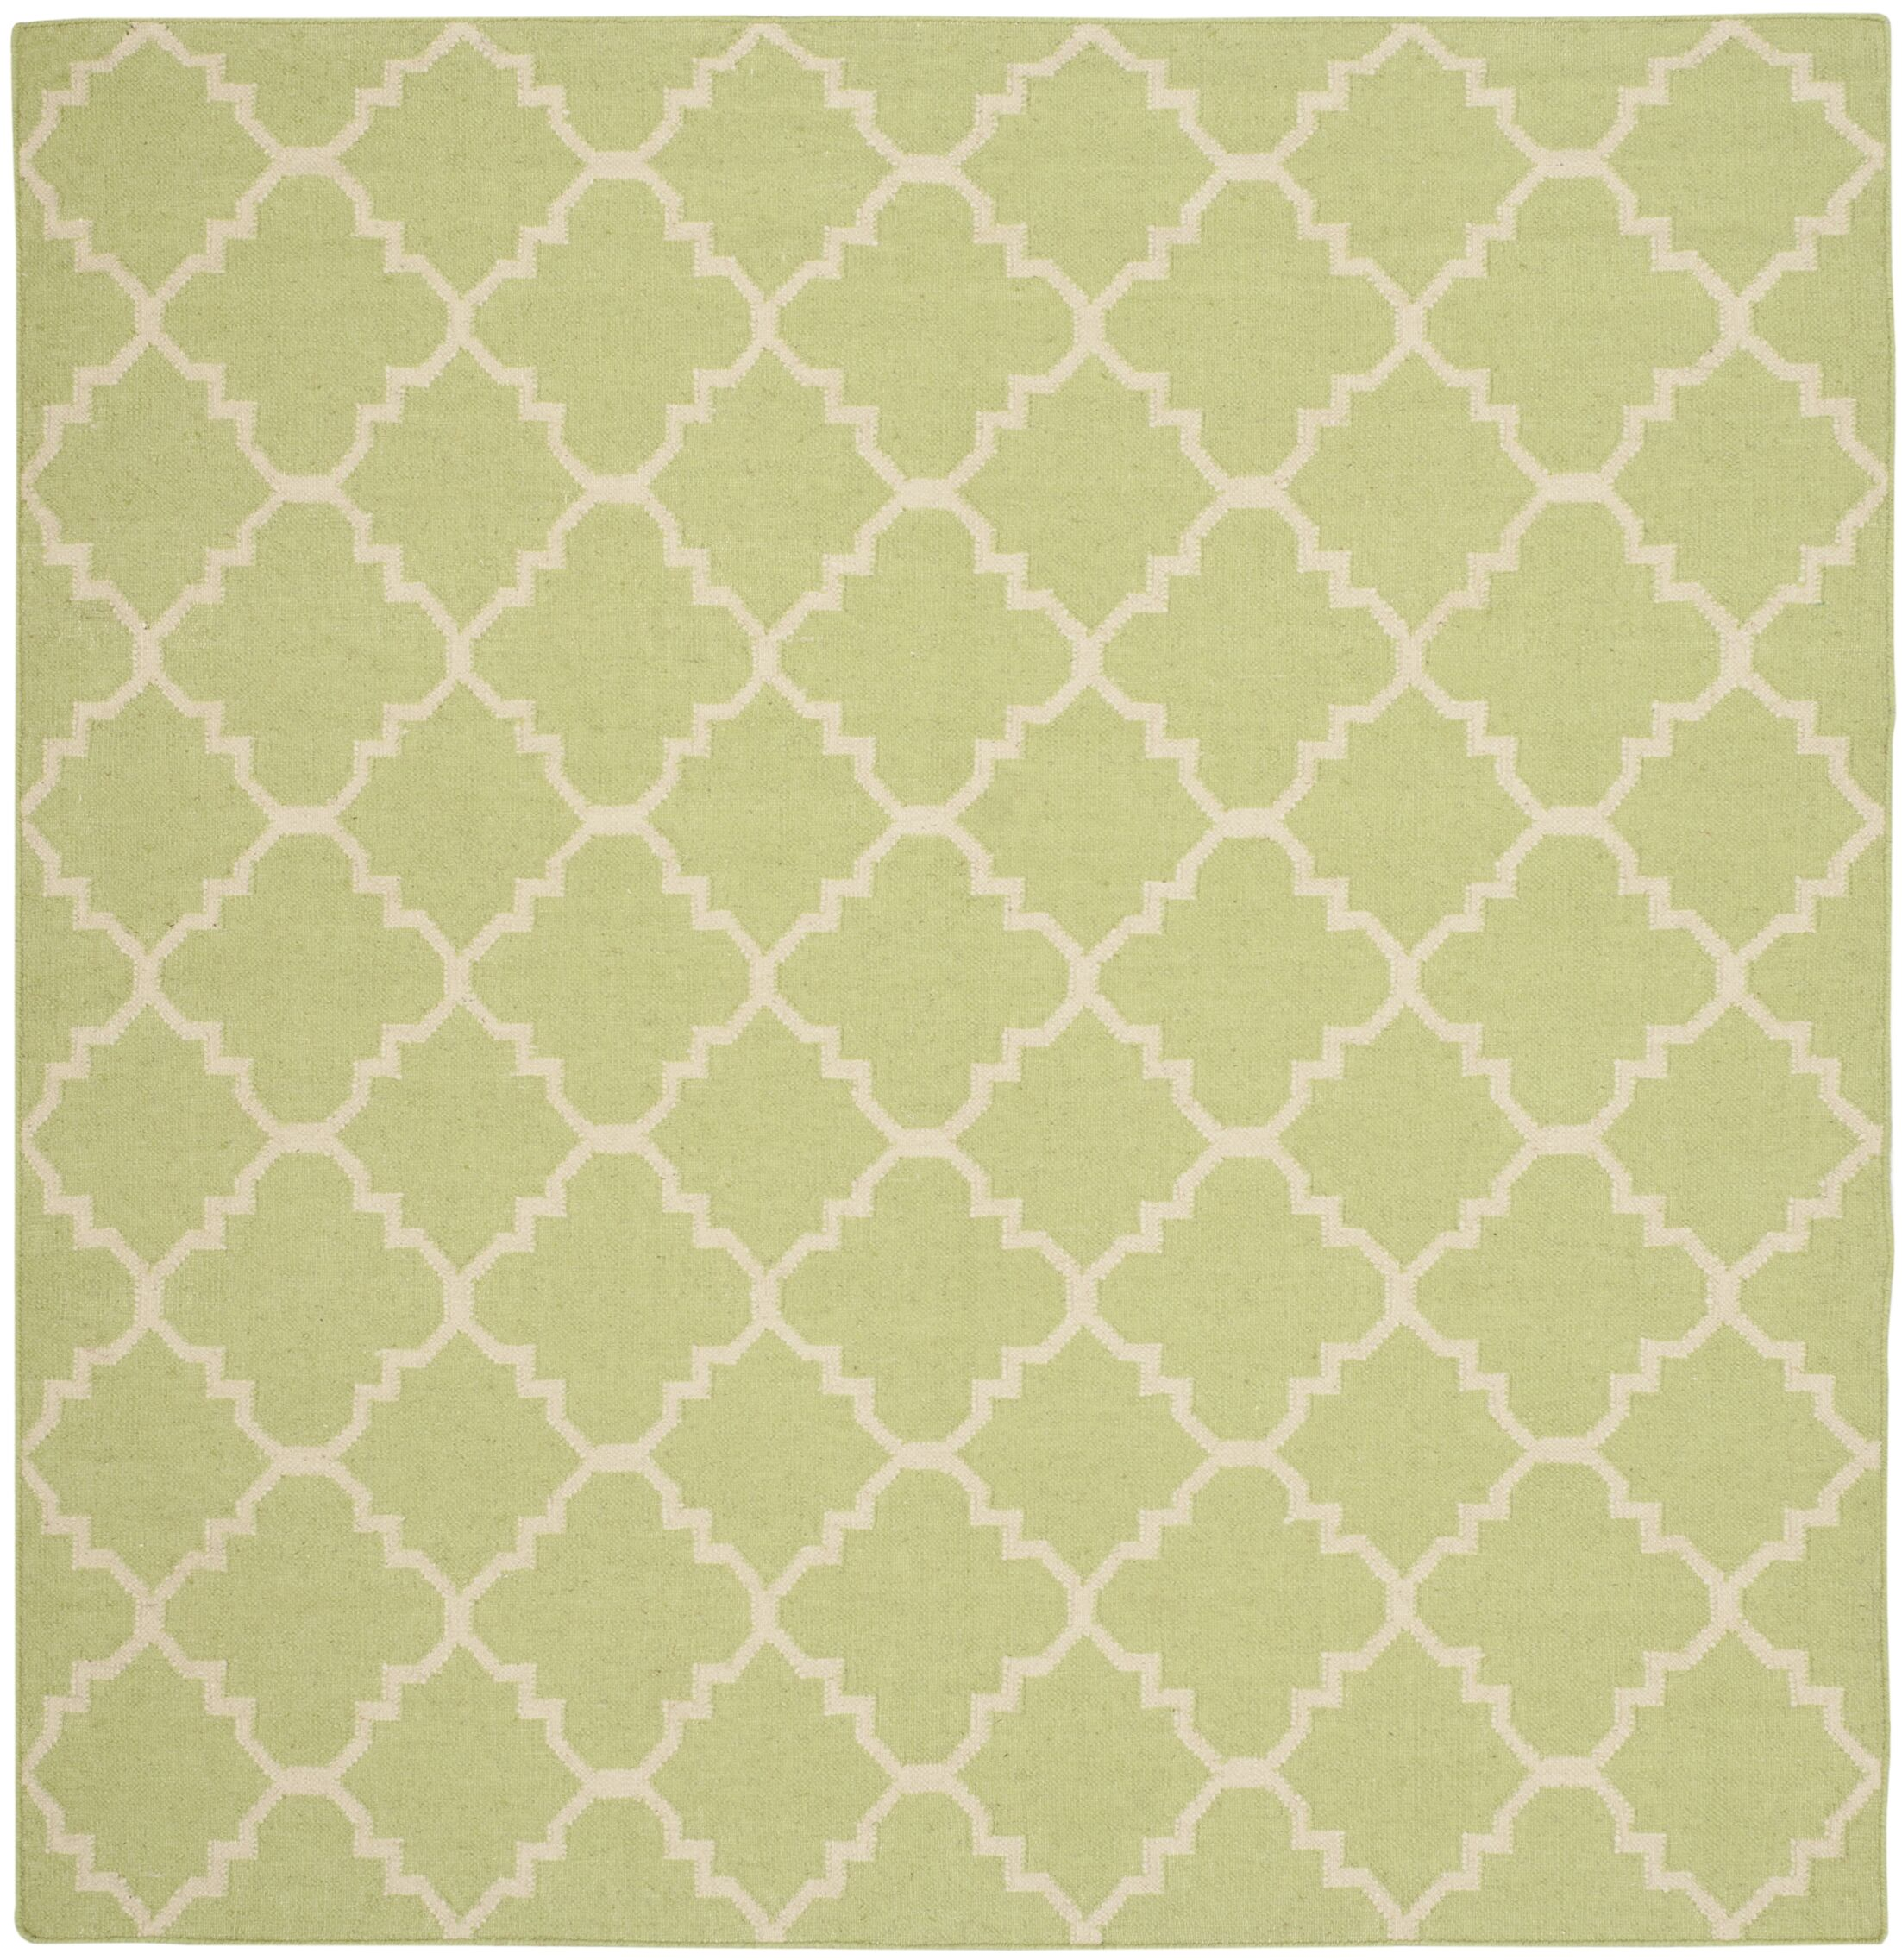 Hand-Woven Light Green/Ivory Area Rug Rug Size: Square 8'